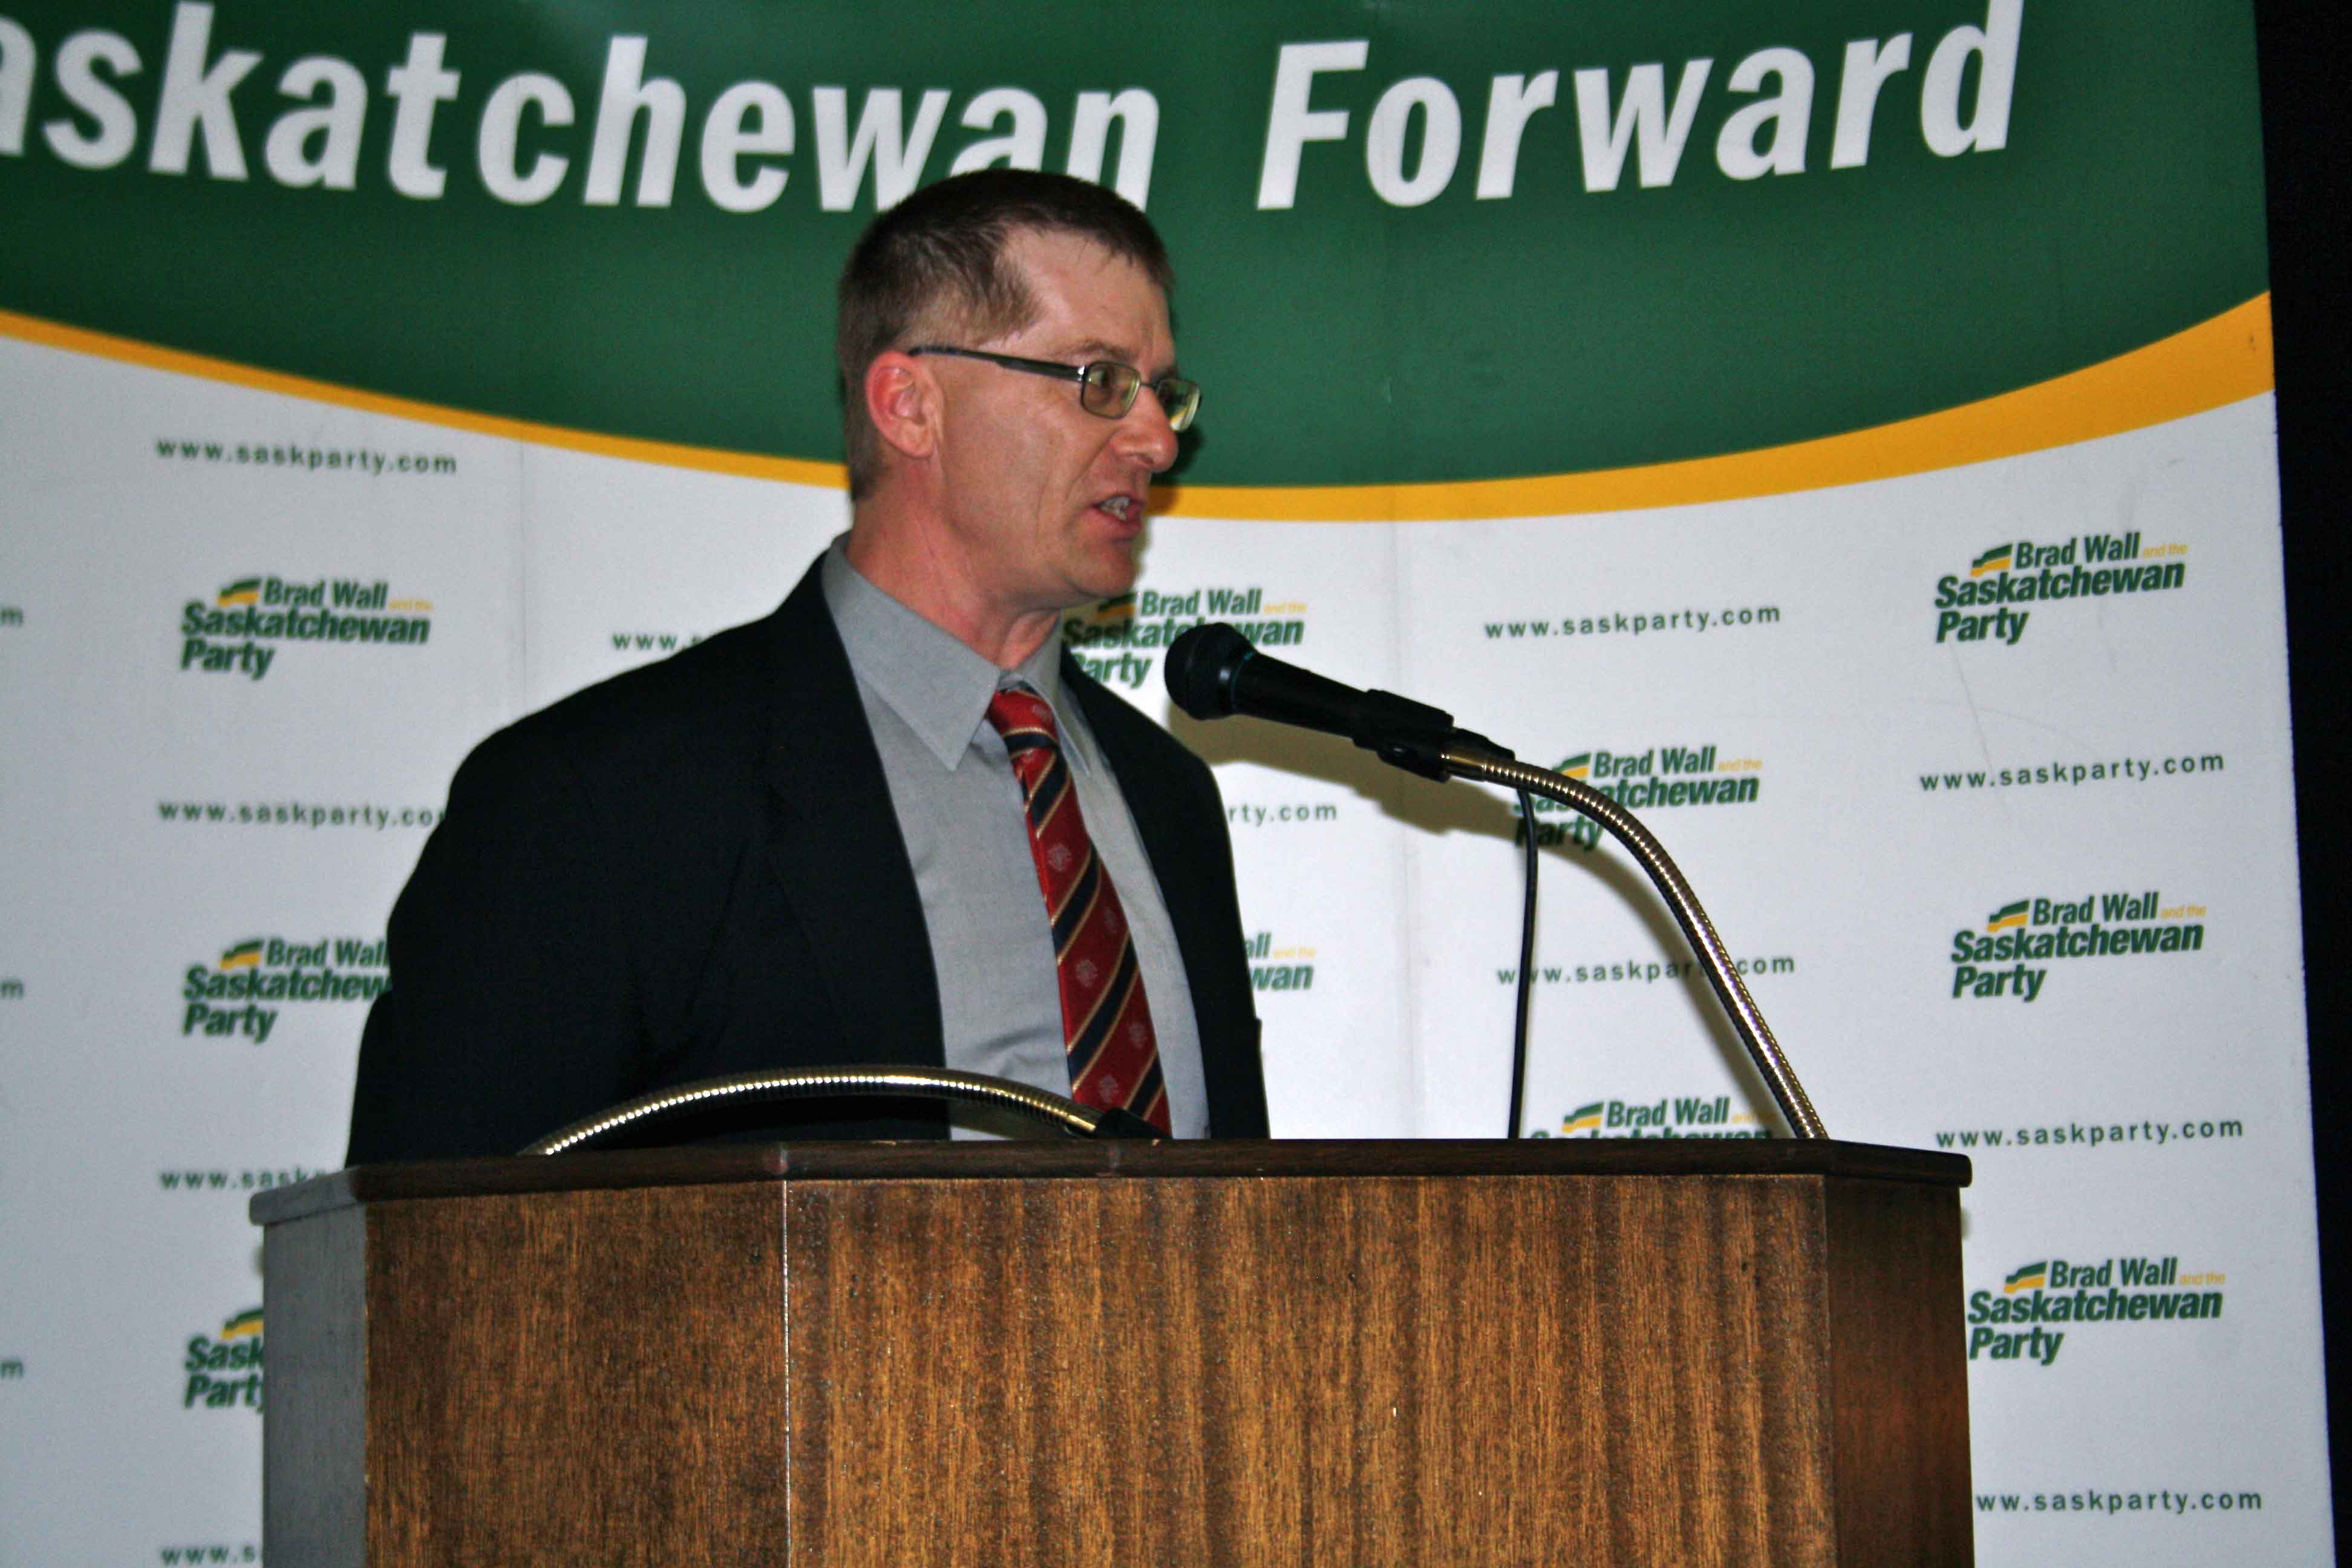 Speaking at a SaskParty Fundraising event